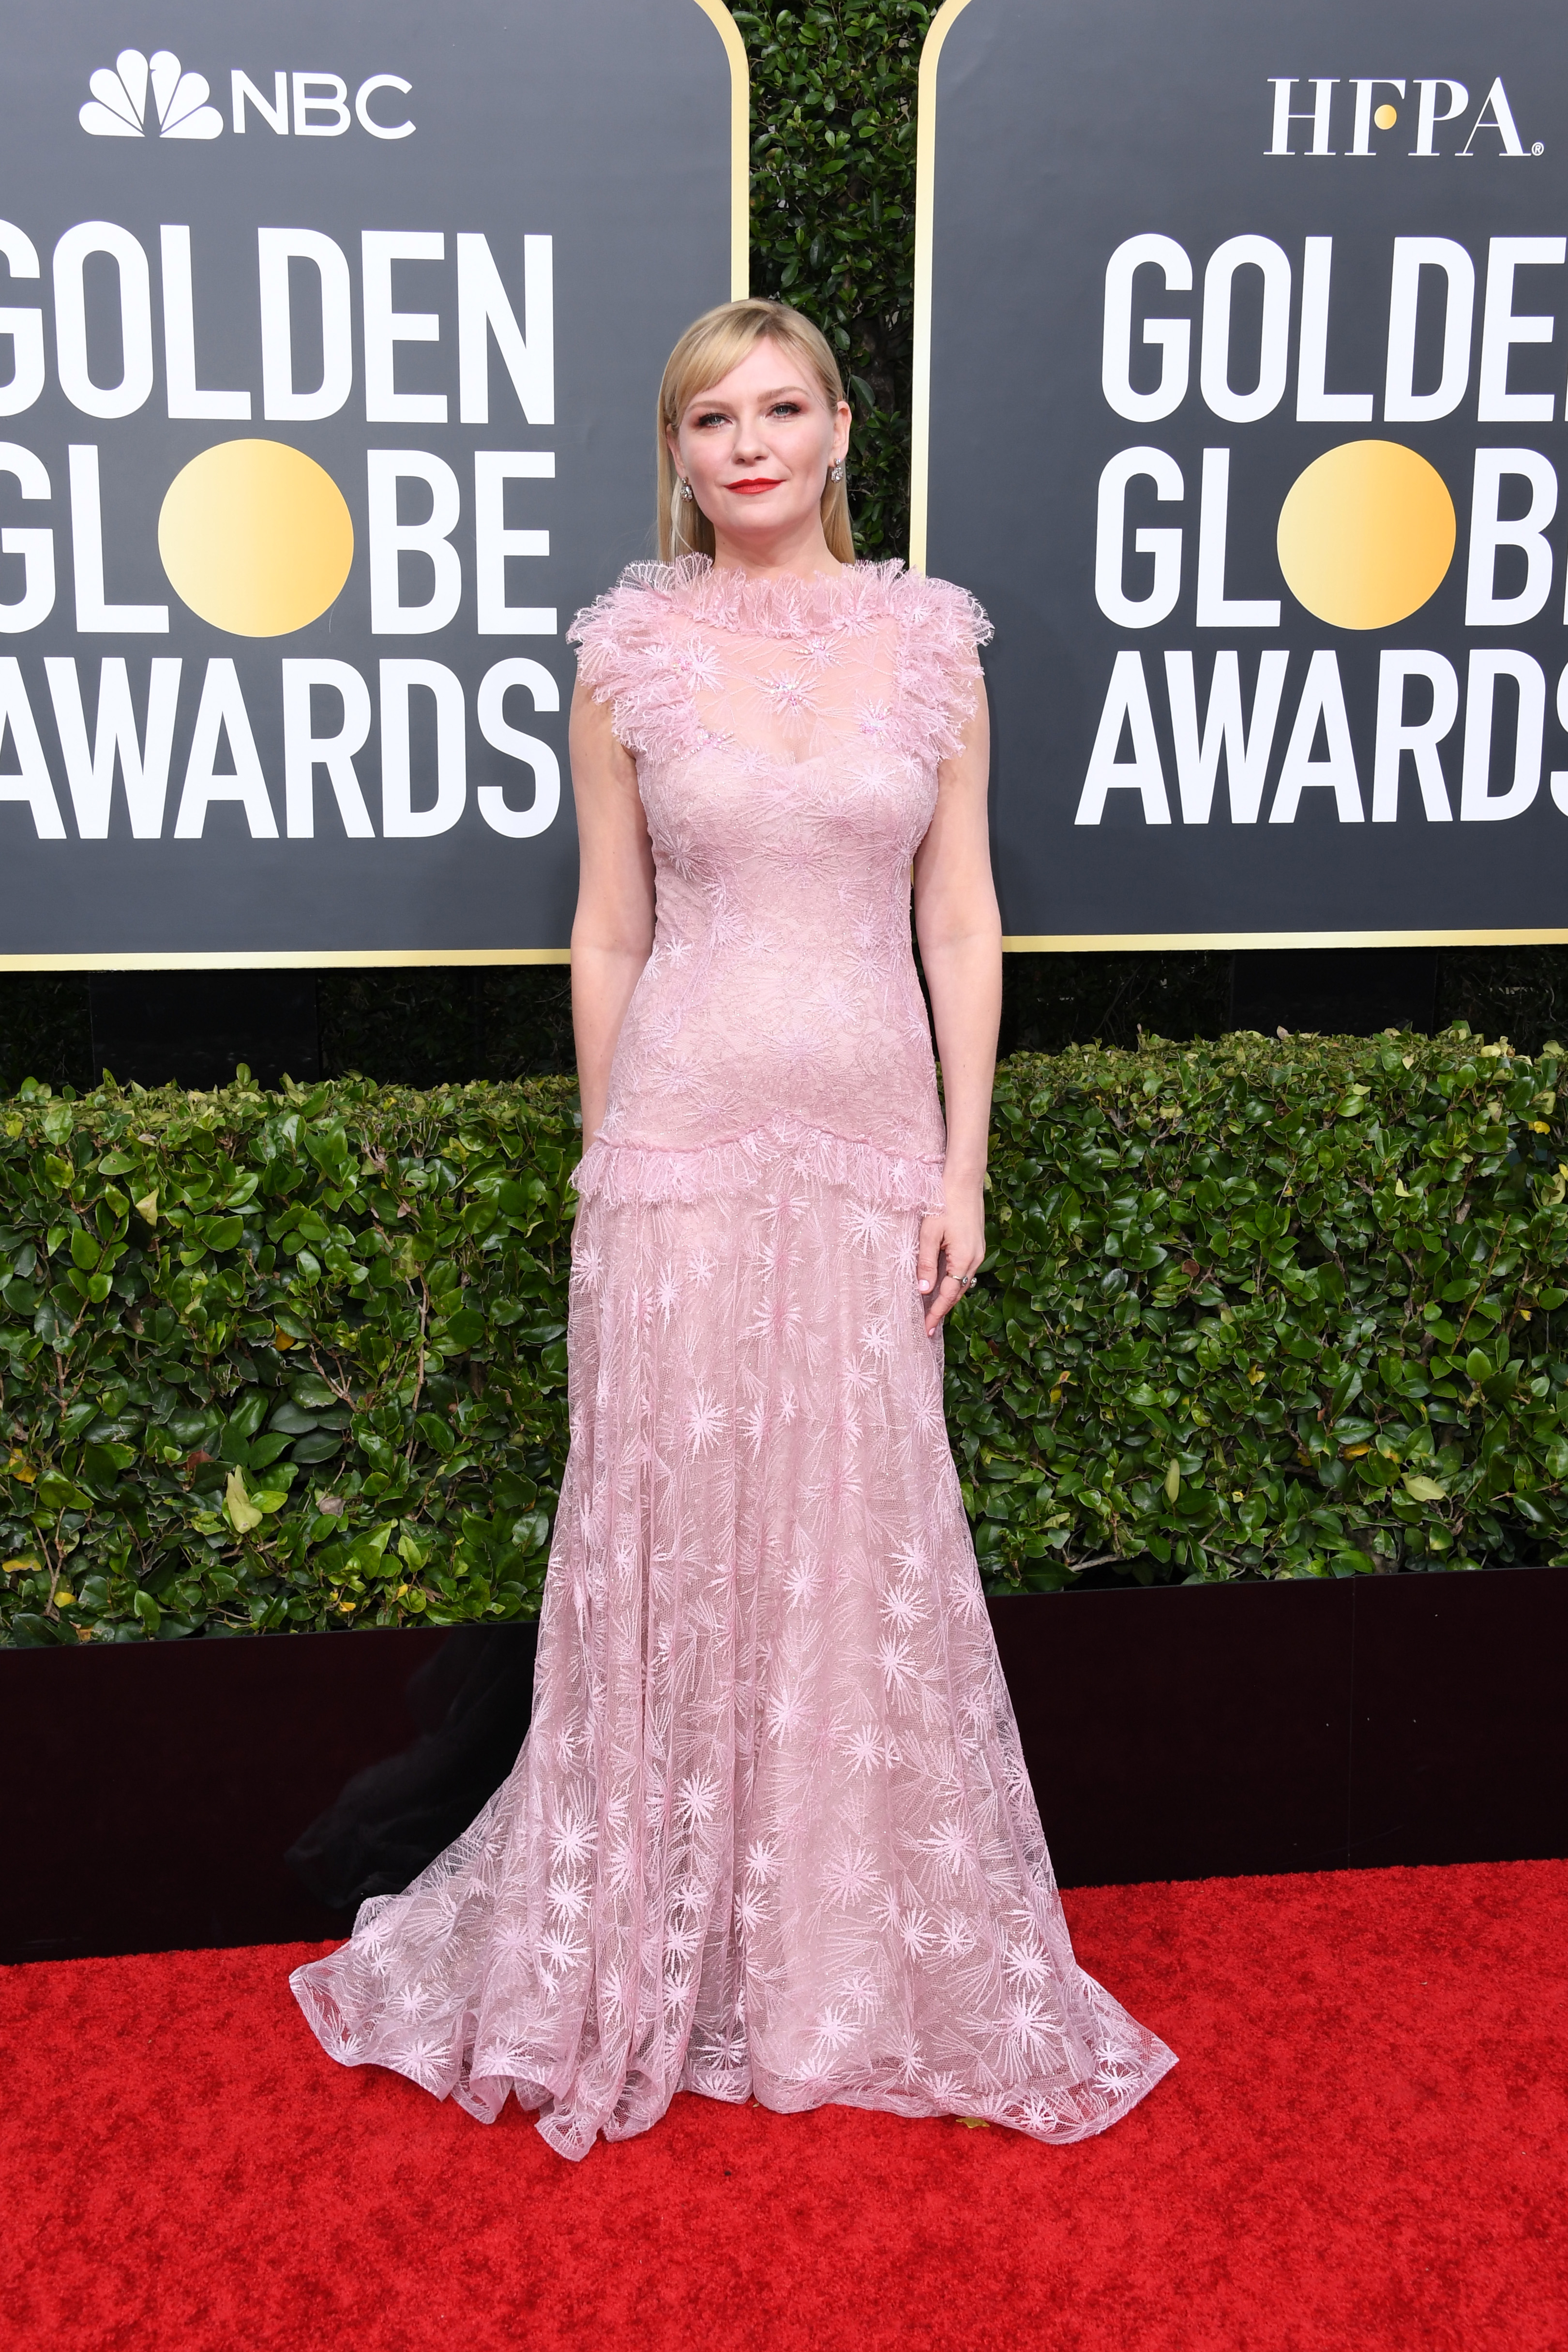 BEVERLY HILLS, CALIFORNIA - JANUARY 05: Kirsten Dunst attends the 77th Annual Golden Globe Awards at The Beverly Hilton Hotel on January 05, 2020 in Beverly Hills, California. (Photo by Jon Kopaloff/Getty Images)